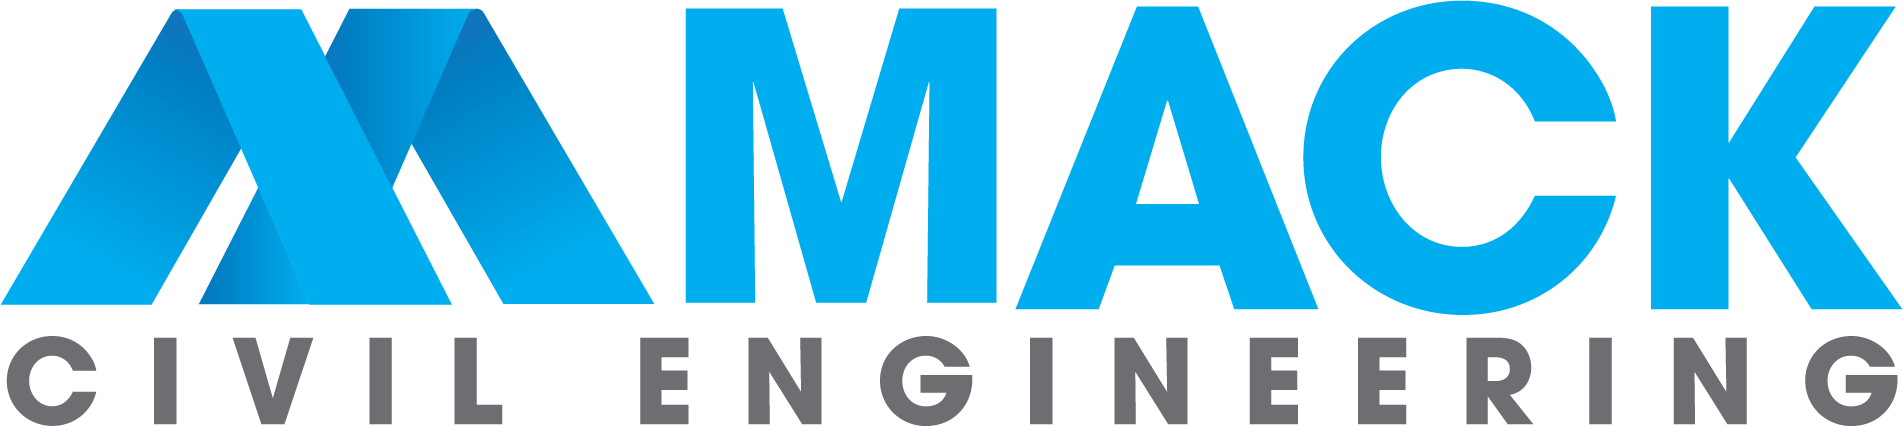 Mack Civil Engineering